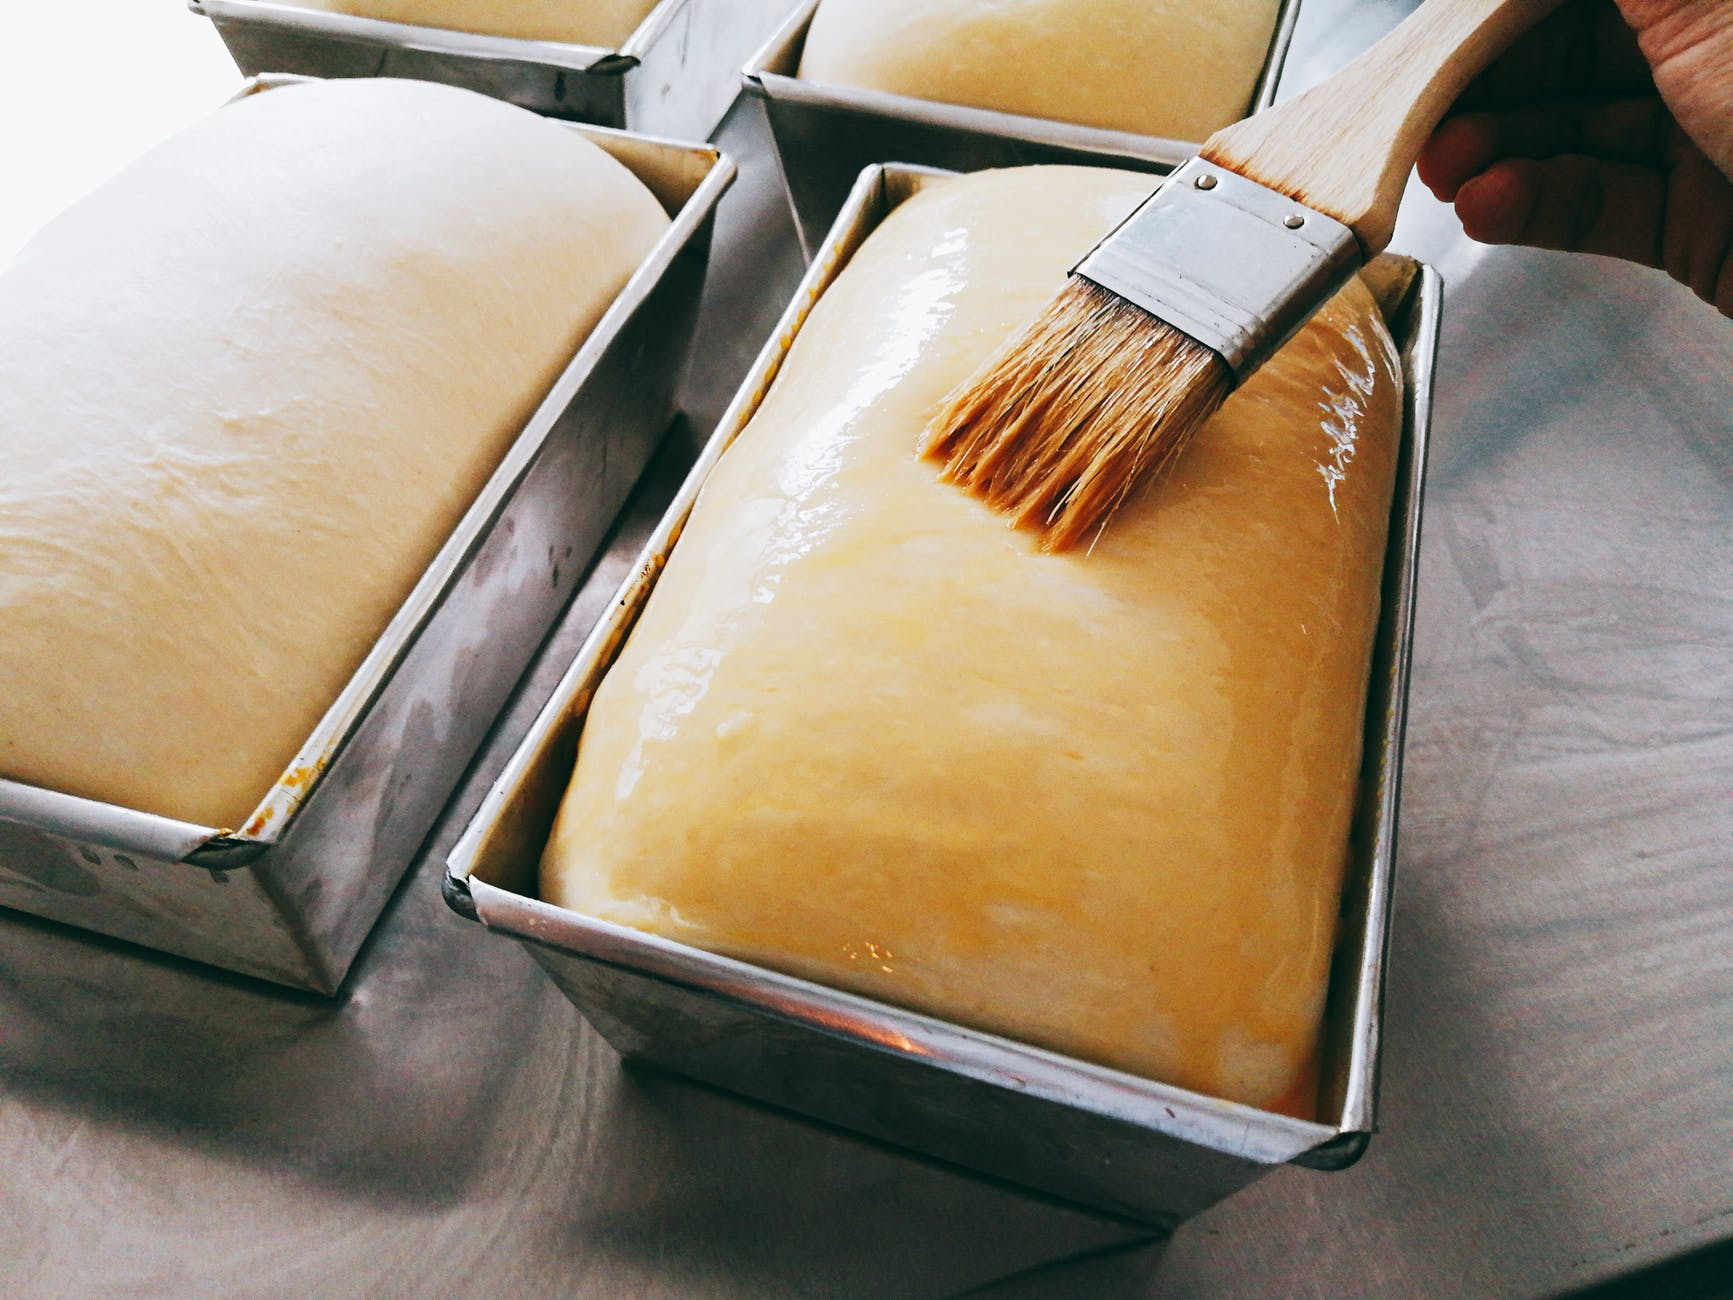 How To Choose Silicone Pastry Brush?